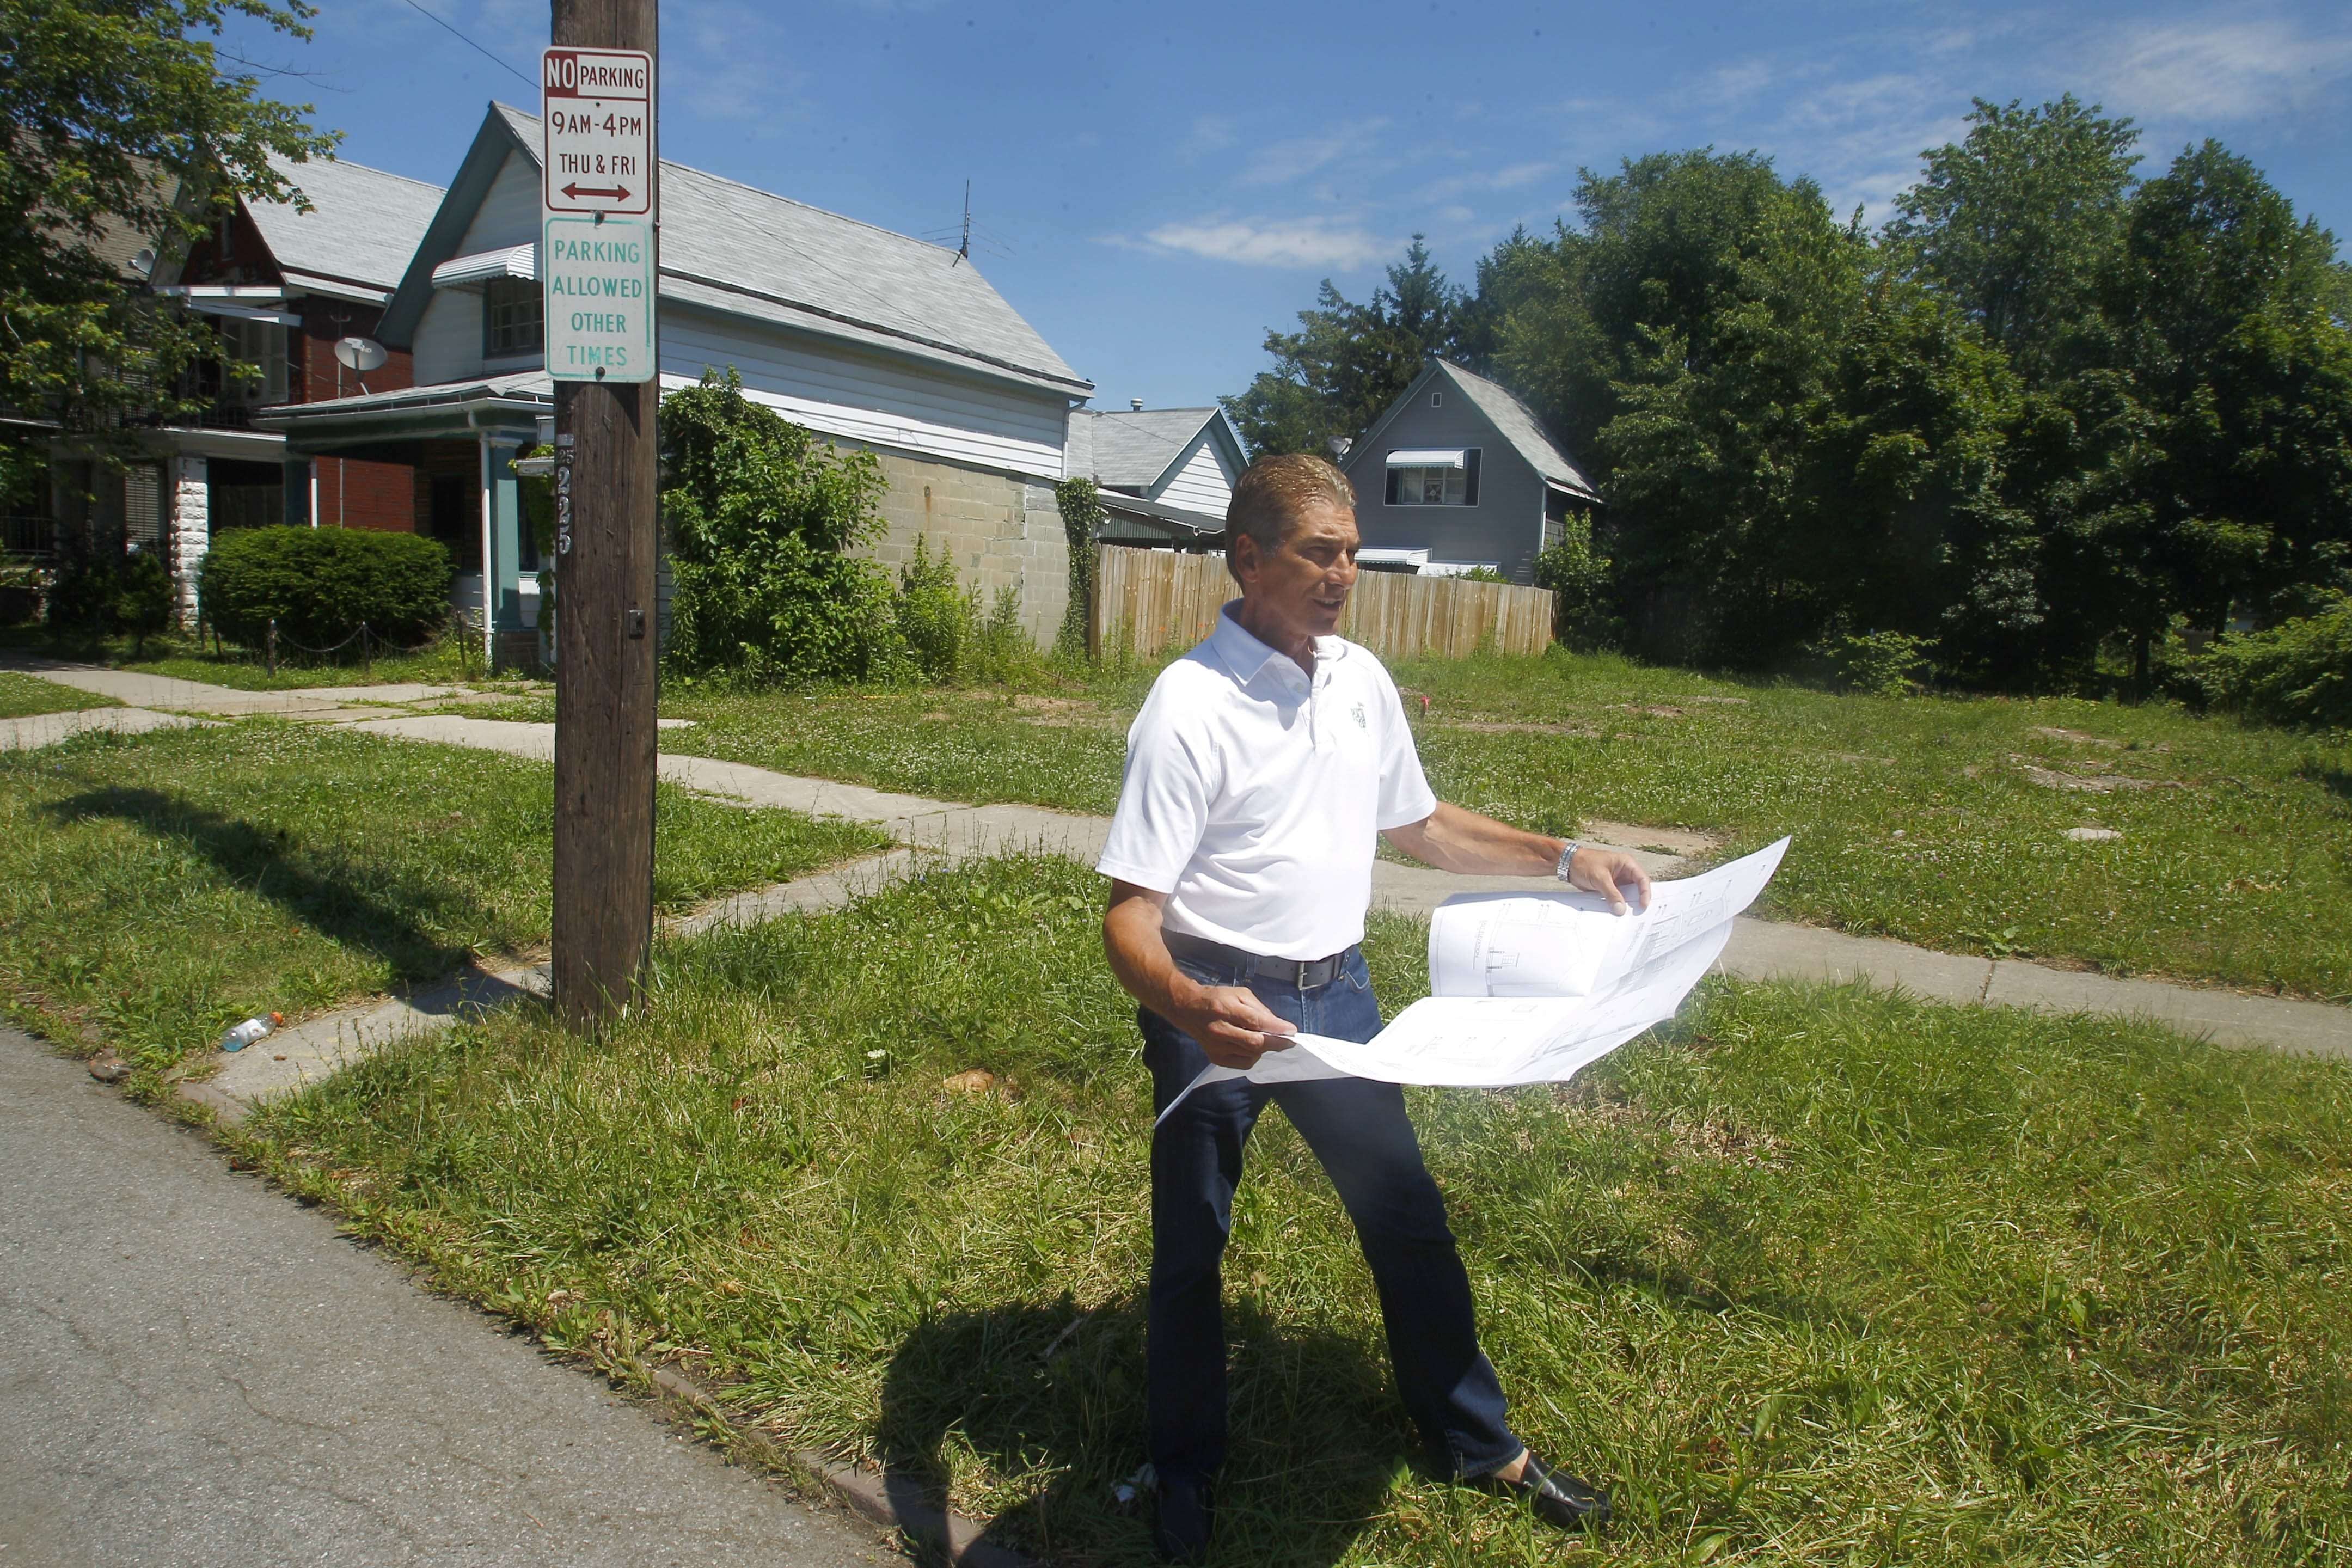 Former Erie County Executive Joel Giambra has plans for housing on Prospect and Fargo avenues.